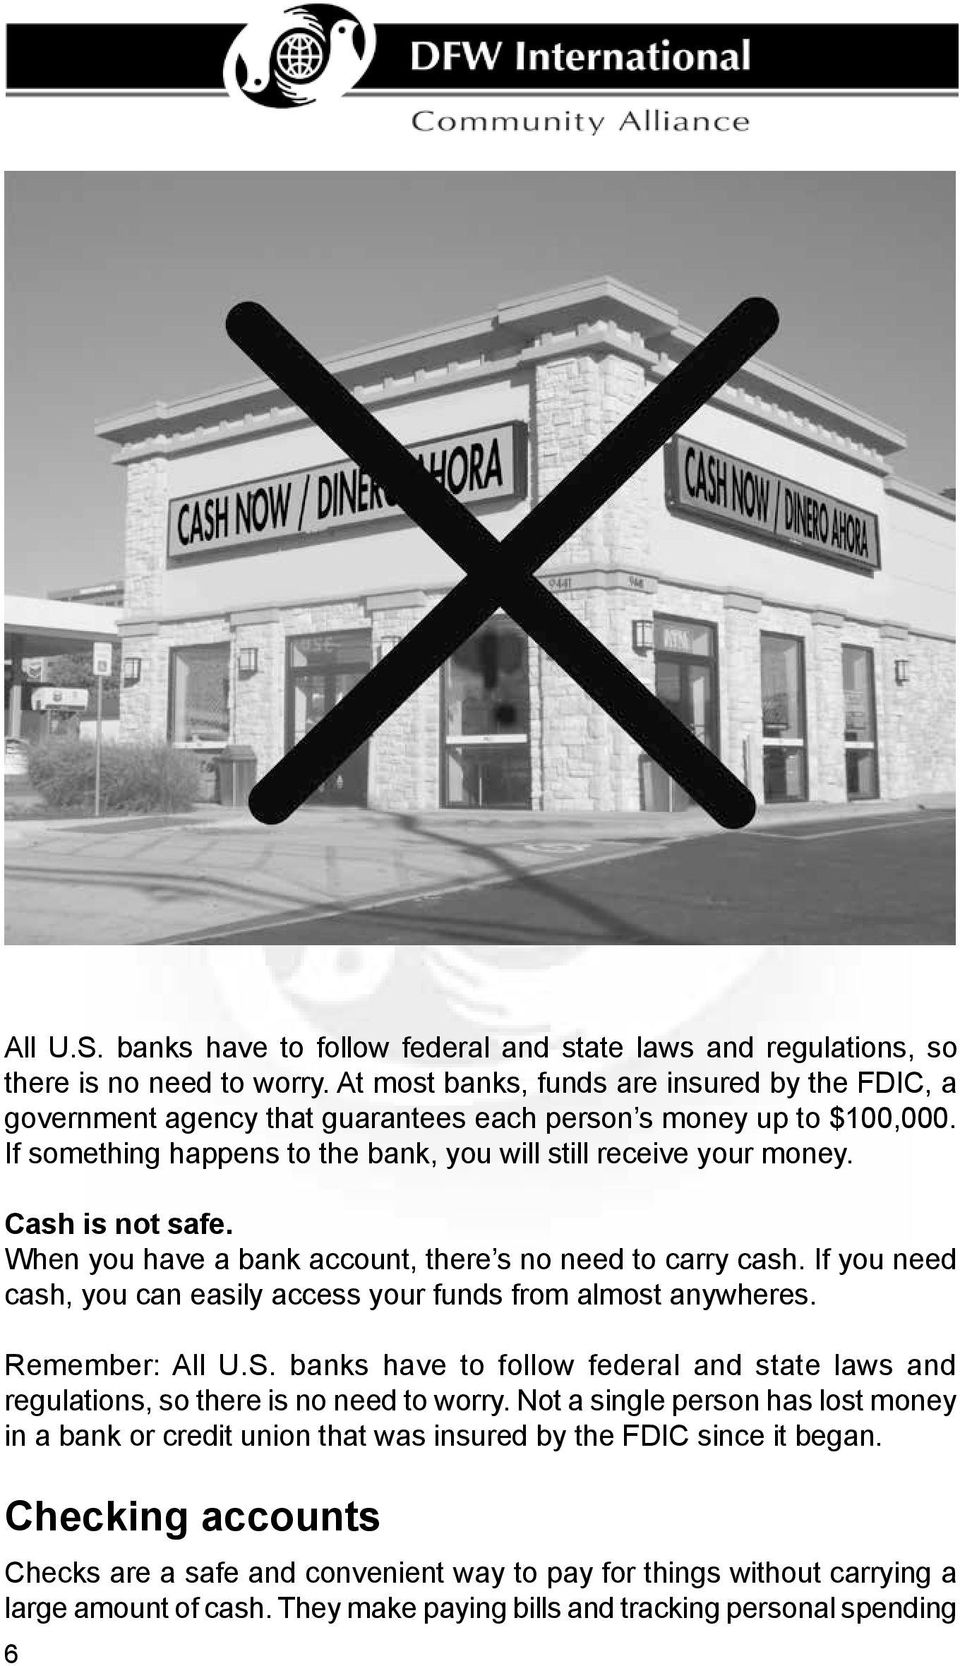 Cash is not safe. When you have a bank account, there s no need to carry cash. If you need cash, you can easily access your funds from almost anywheres.